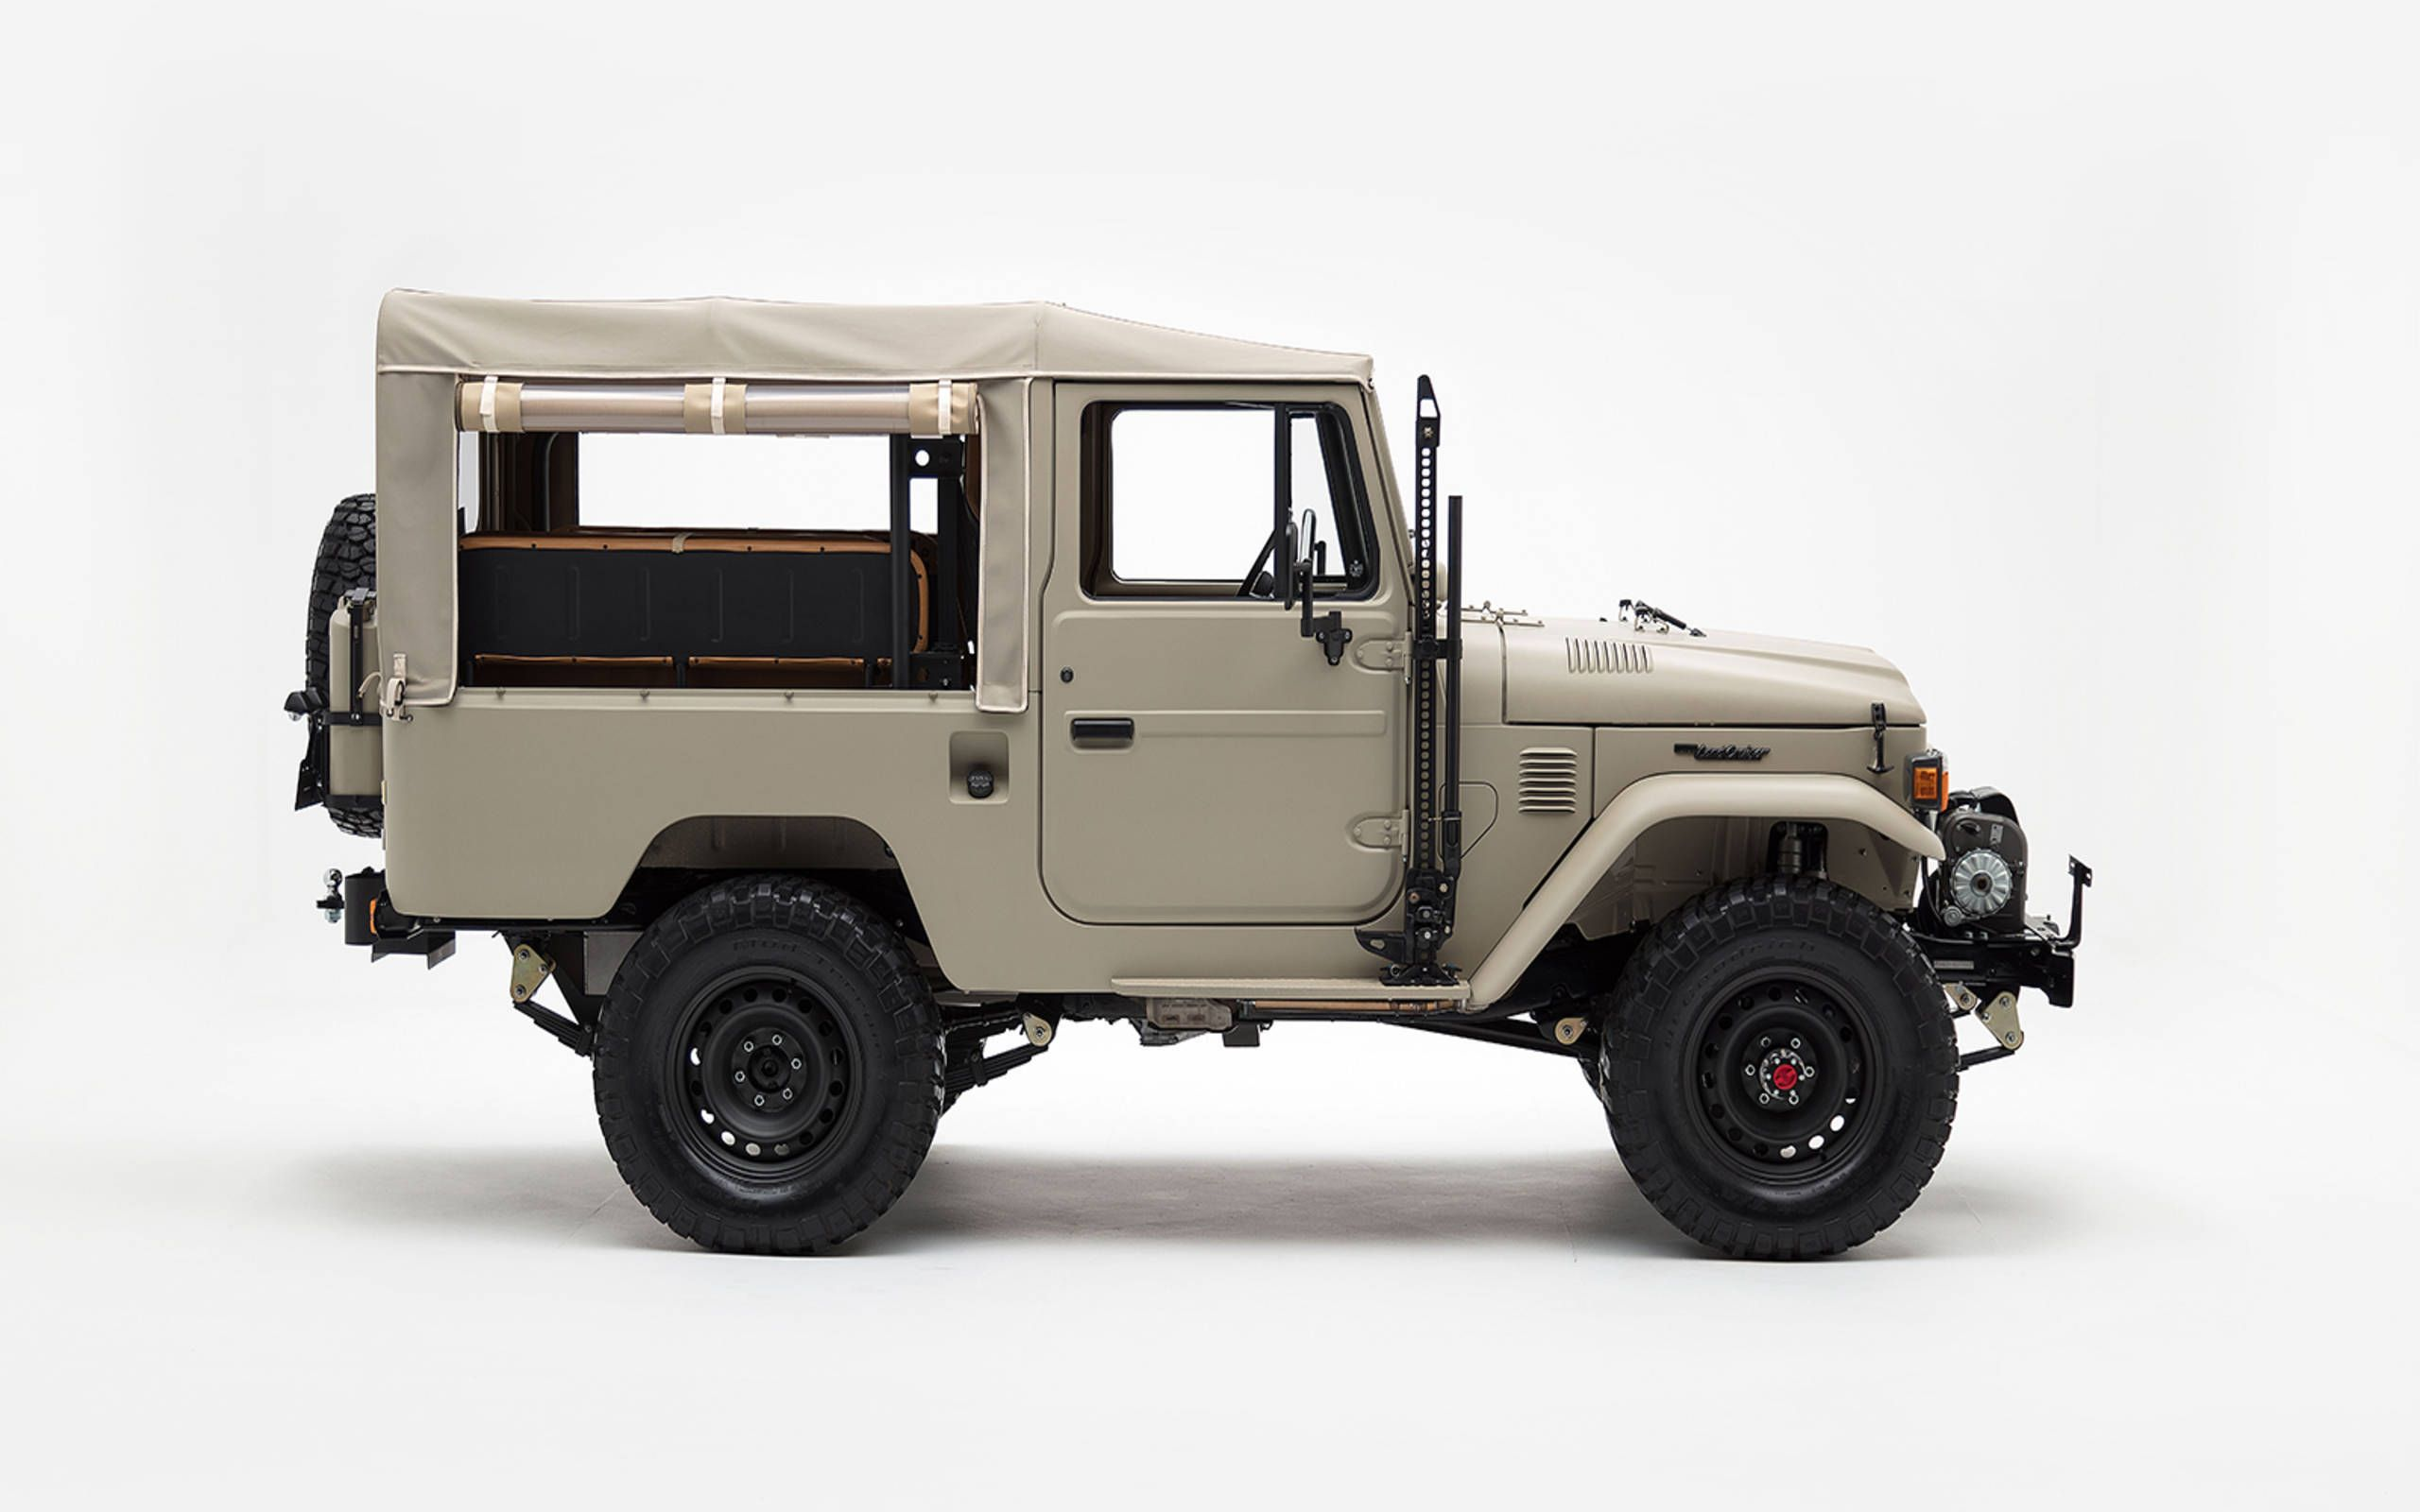 this classic toyota land cruiser gets updated for modern times without being over updated this classic toyota land cruiser gets